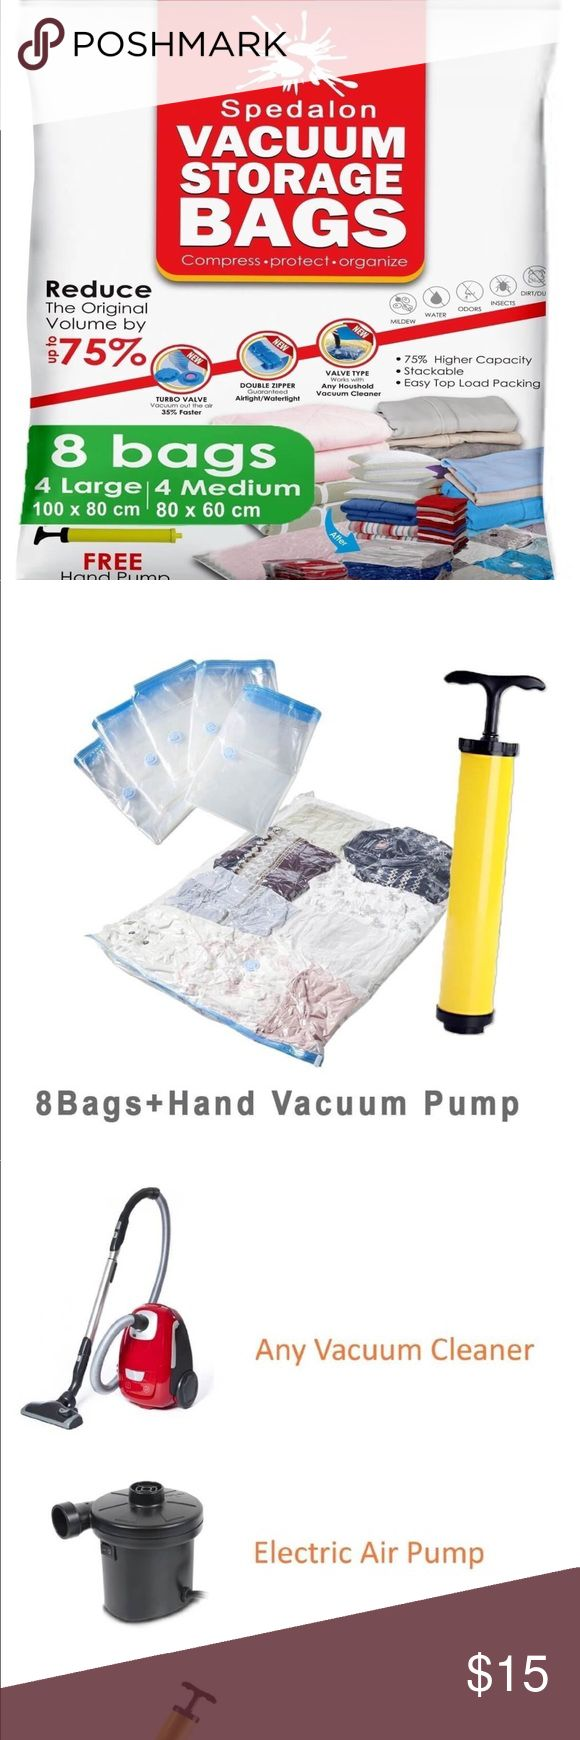 Vacuum Storage Bags 8 packs ReUsable space saver with free Hand Pump for travel packing - Best Seal Bags for Clothes, Comforters, Pillows, Curtains, Blankets Total of 8 space saving bags  4 Large bags (40inX30in) 4 Medium sized bags (31inX25in) 1 Travel Pump Other